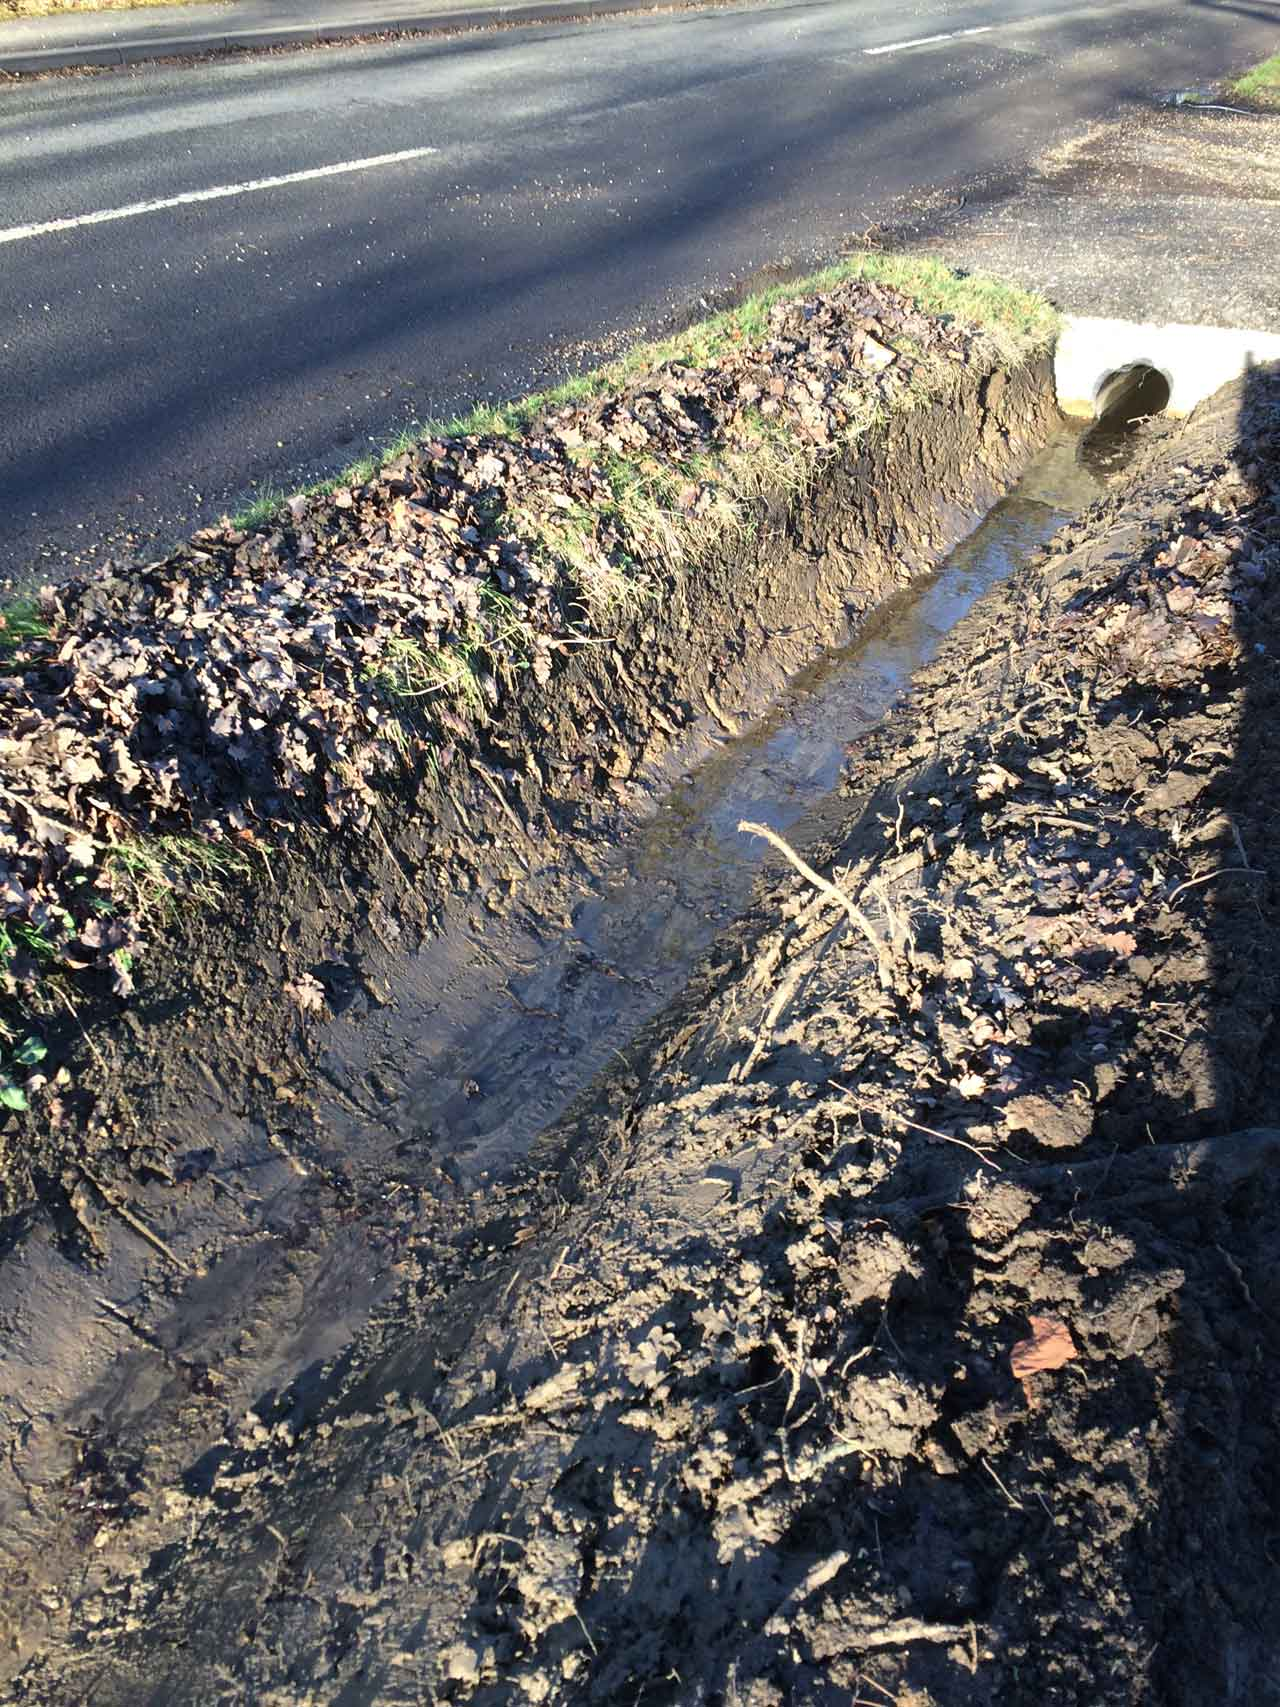 Image of a ditch after cleaning - Ditching, ditch-cleaning for correct drainage and flood minimisation - Let the digger do it - Winnersh - Wokingham -Berkshire - Hampshire - Surrey - digger ditch cleaning services.